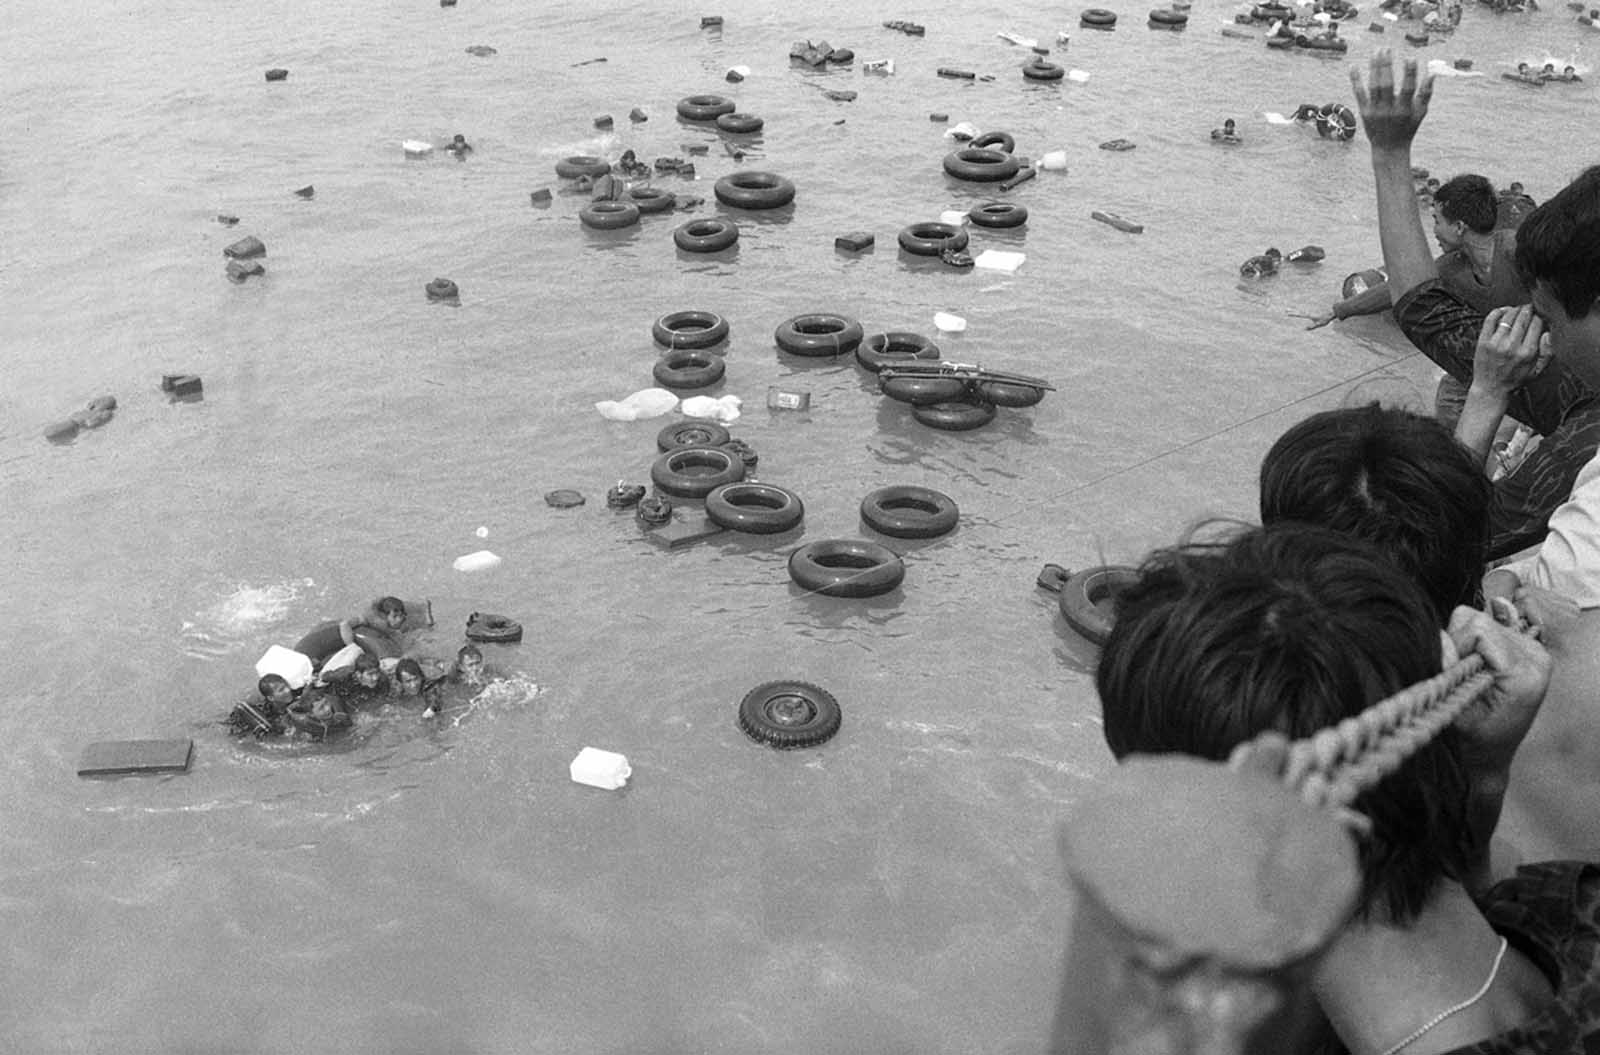 A cluster of South Vietnamese marines, some of whom unable to swim, hold onto inner tubes and empty plastic containers as buddies throw them a line to pull them aboard a navy LST off China Beach at Danang as they fled the port city in April of 1975.